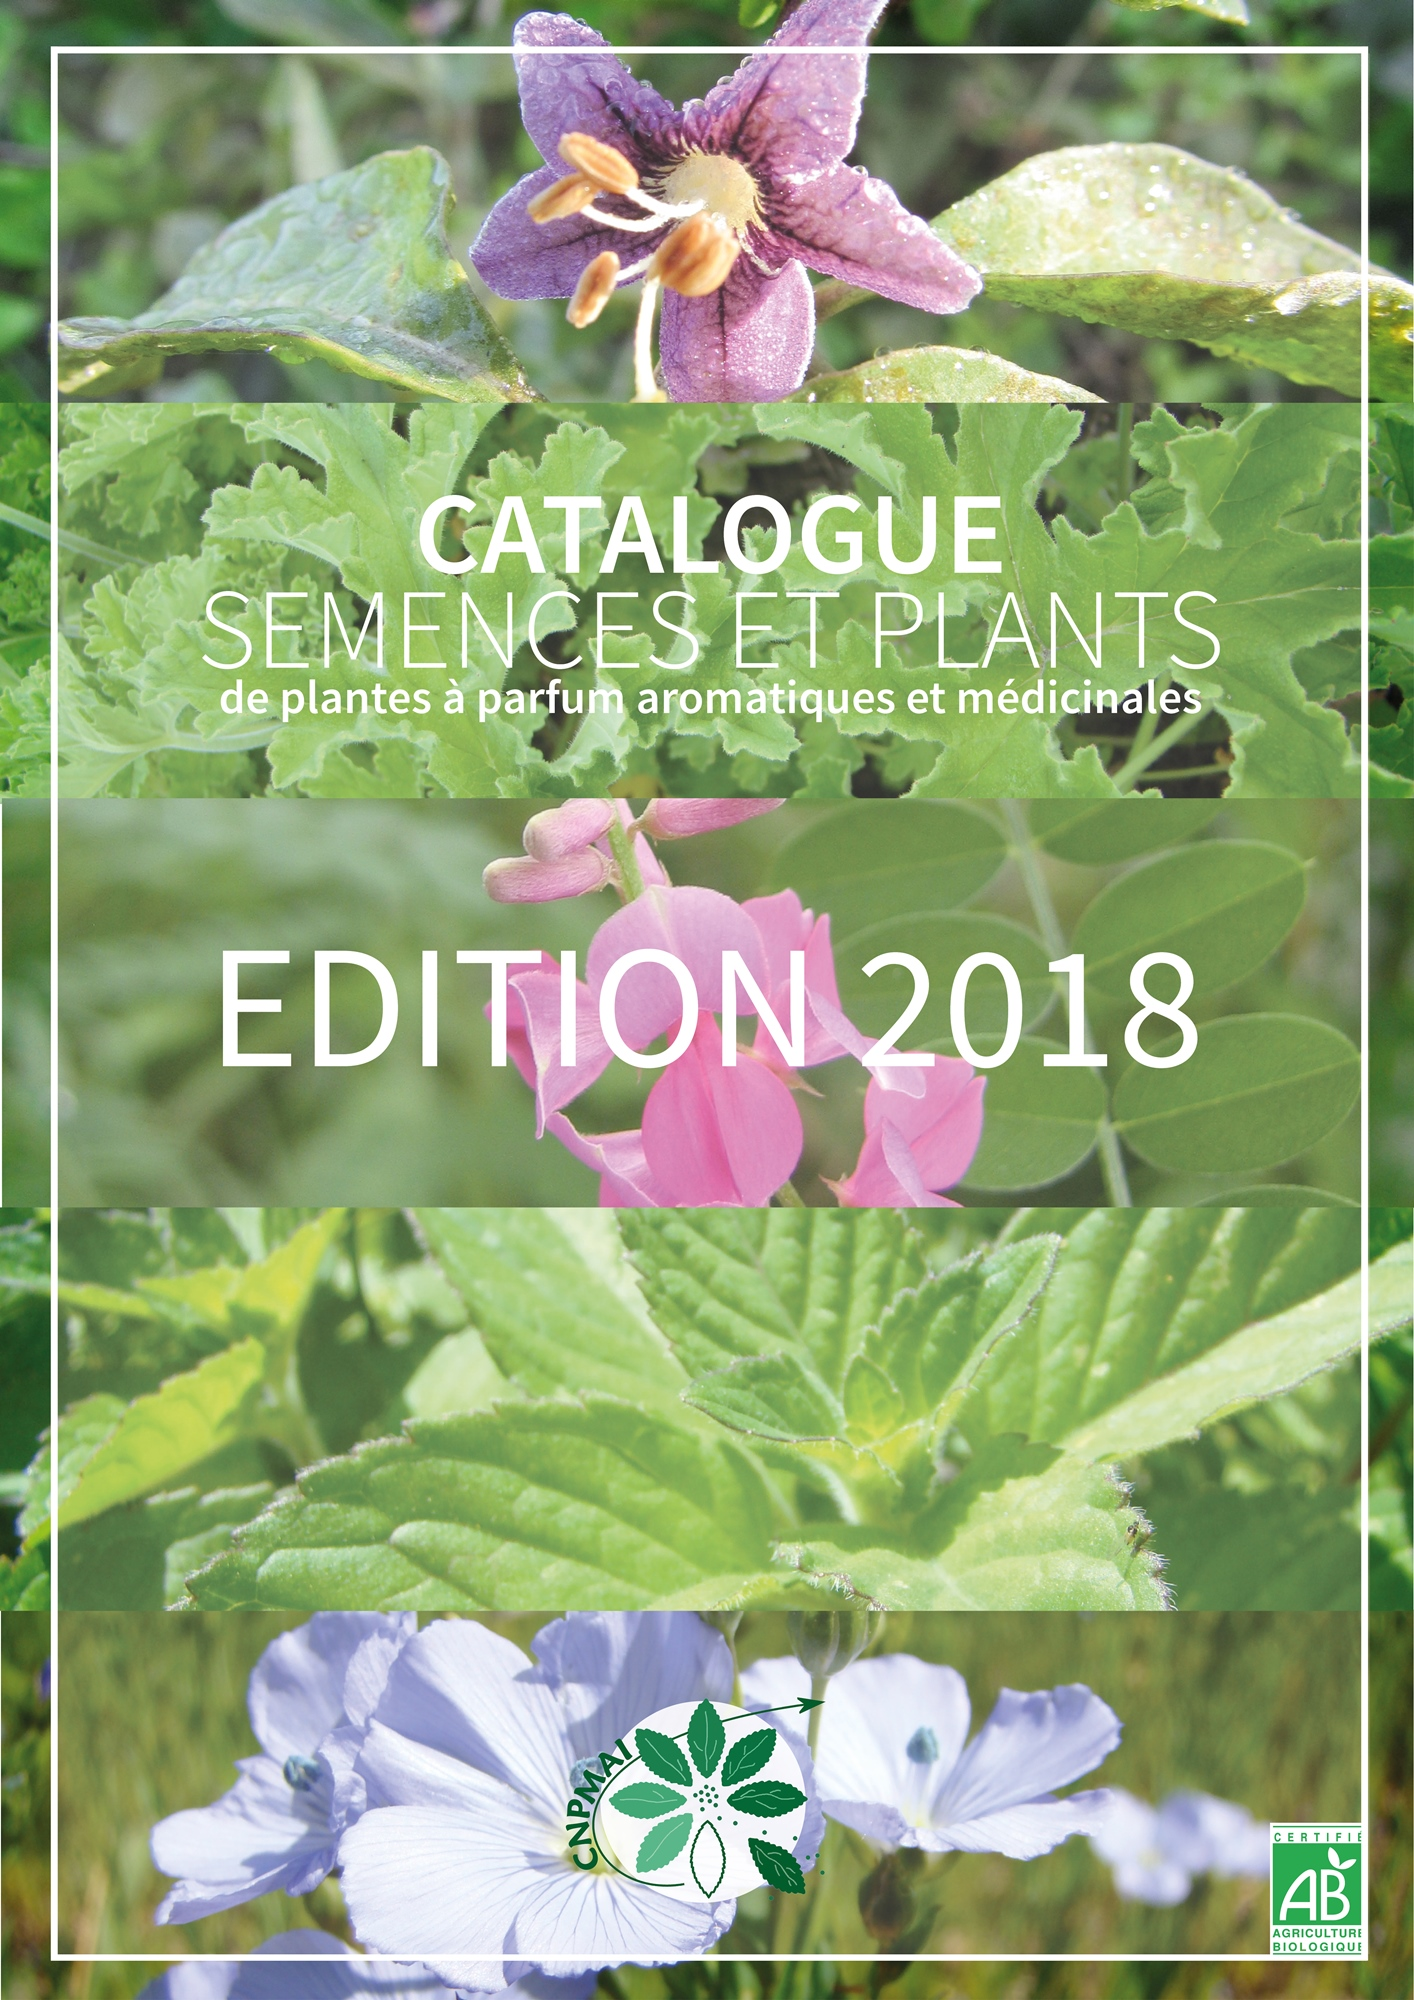 Catalogue semences et plantes 2018